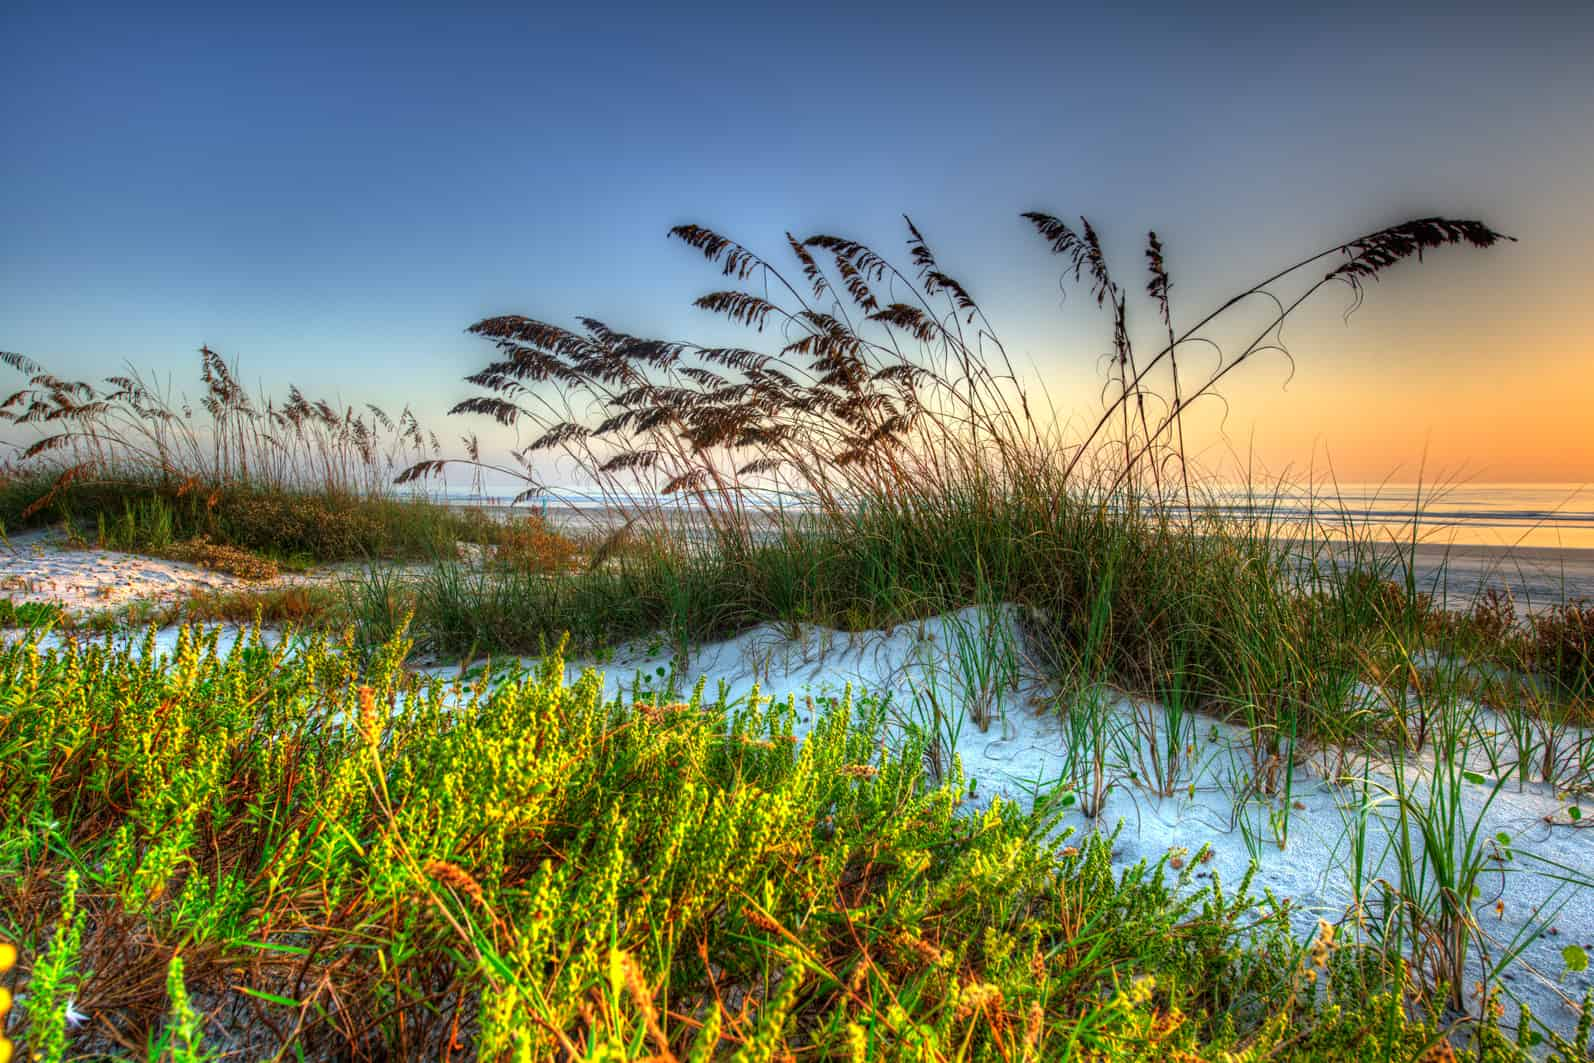 10 Reasons To Make Daytona Beach Your Weekday Getaway